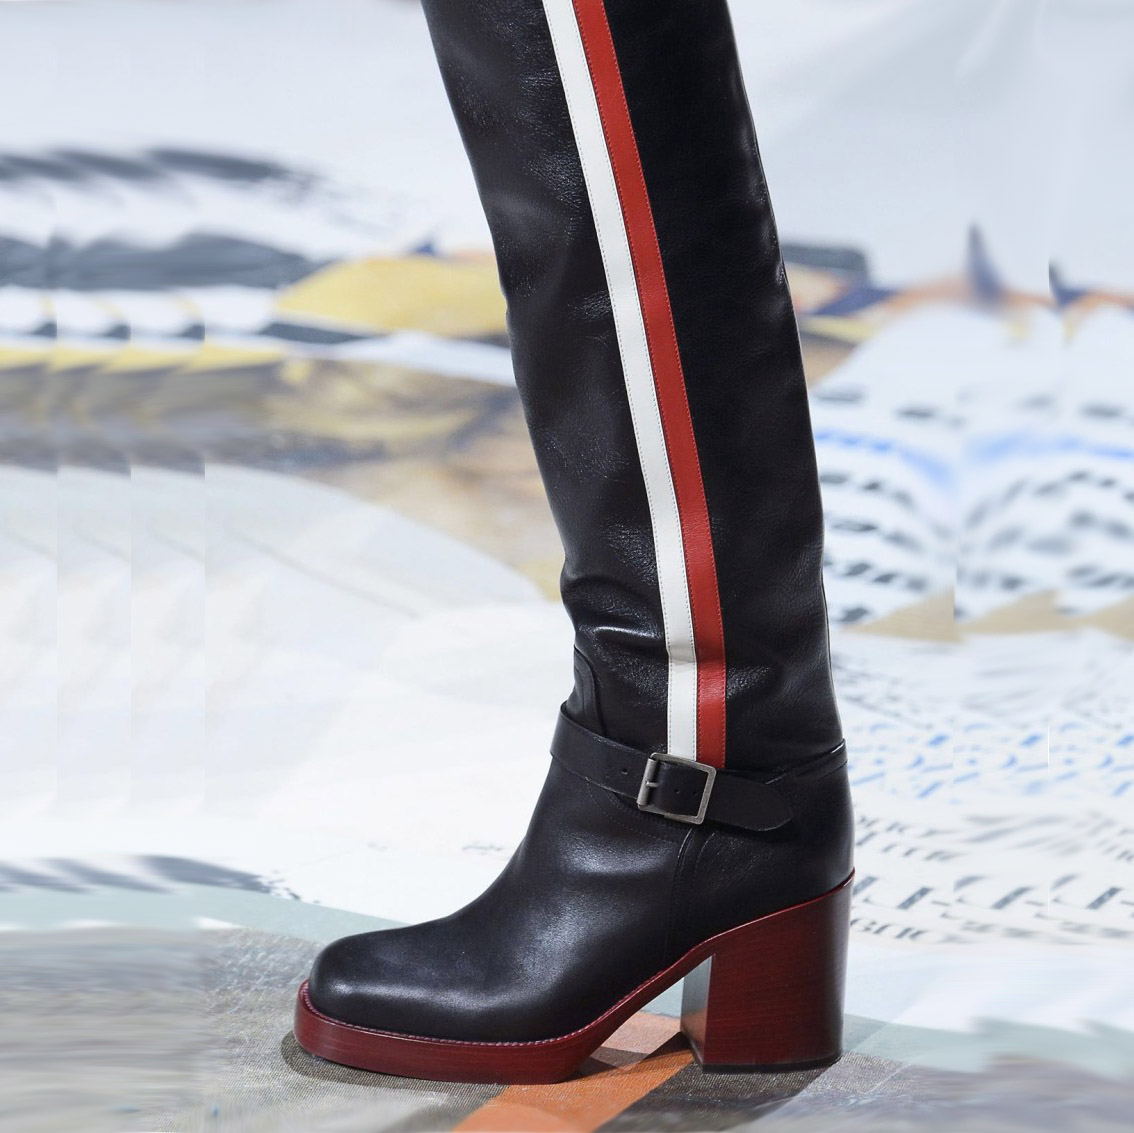 714d235b9686 US  75 - 2018 spring autumn chunky heels 5cm knee high boots genuine leather  ladies women s shoes big size boots - www.ardenfurtado.com